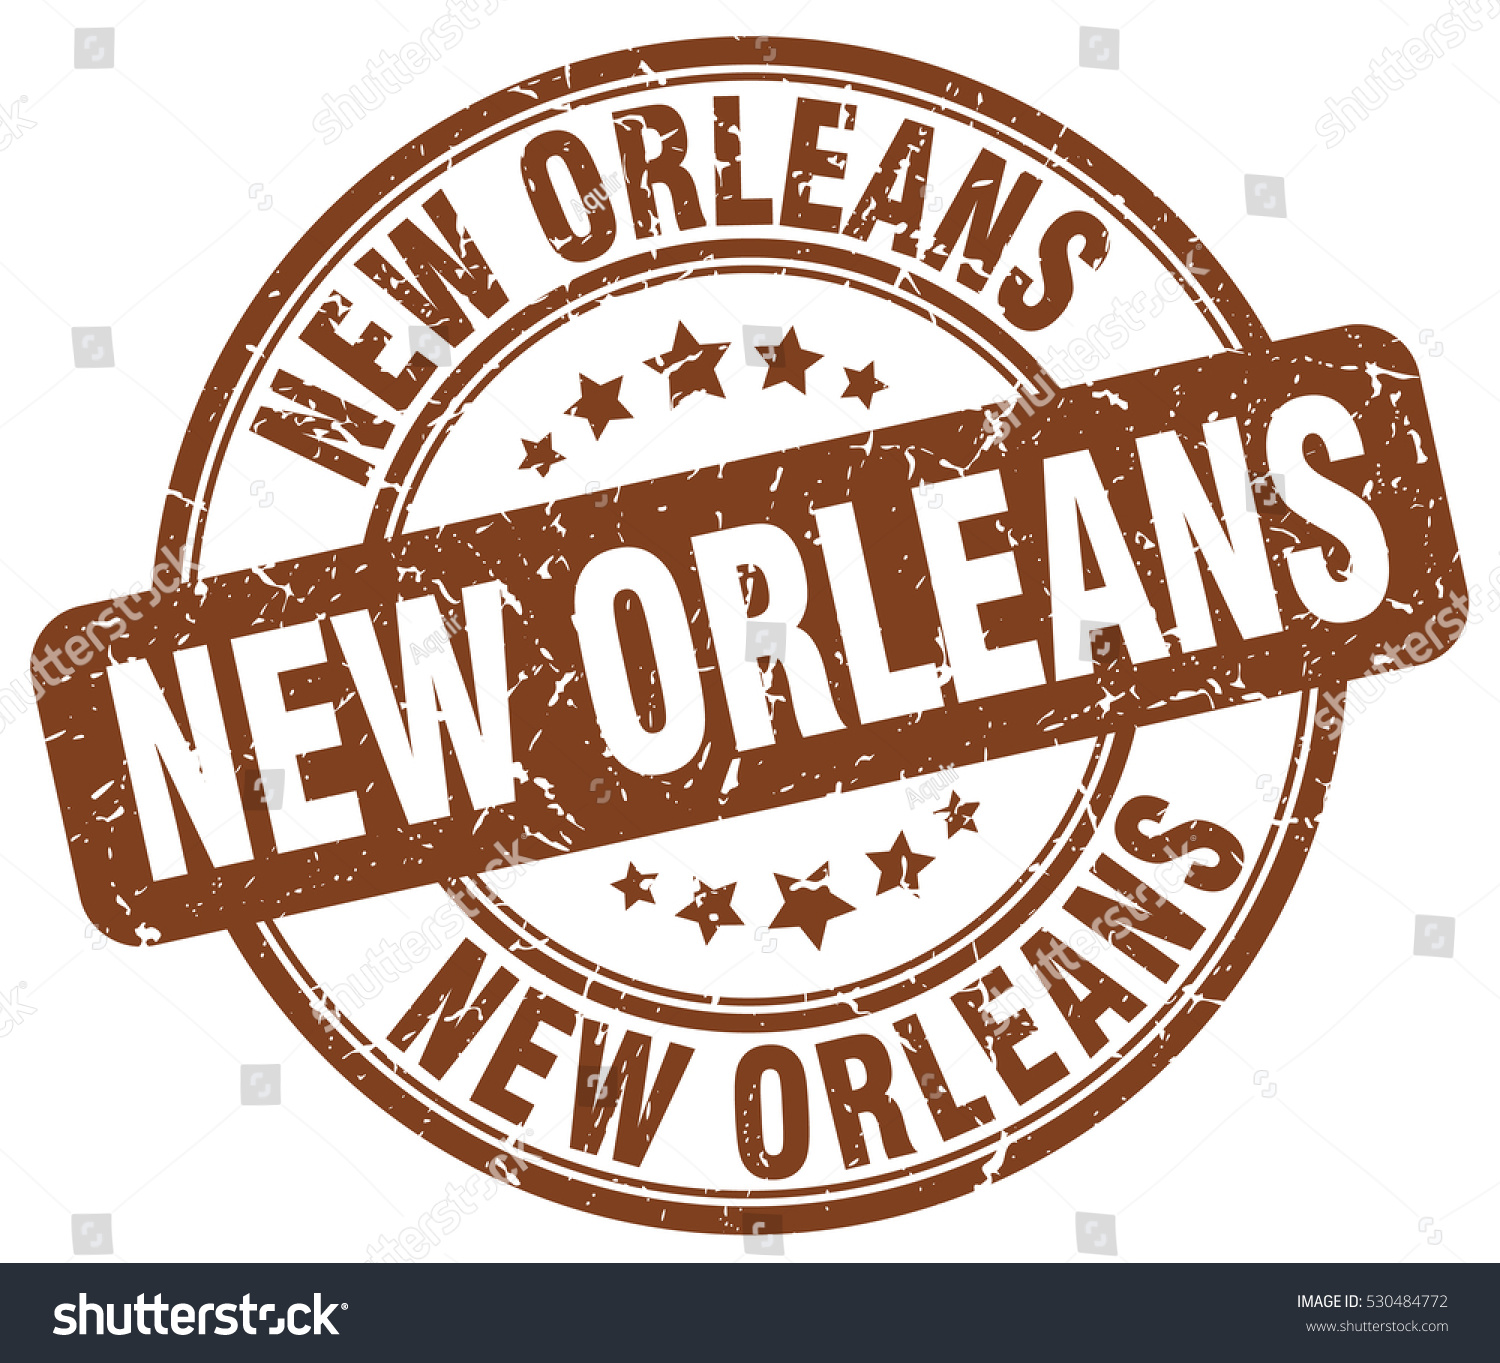 New orleans stamp brown round grunge stock vector 530484772 new orleans stamp brown round grunge vintage new orleans sign buycottarizona Images